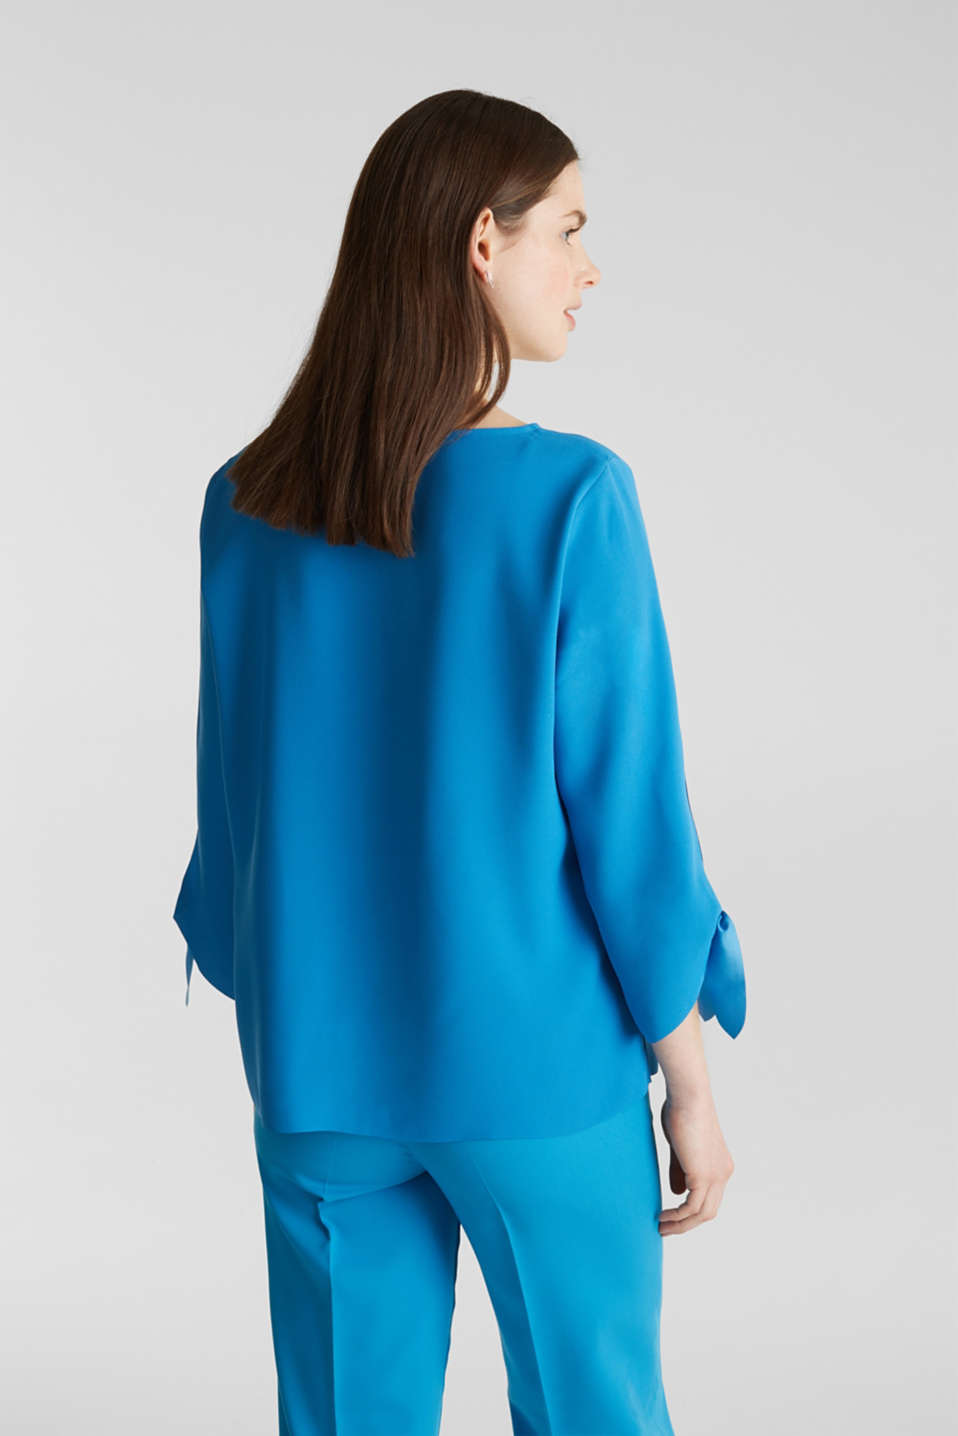 Crêpe blouse with laser-cut details, DARK TURQUOISE, detail image number 3